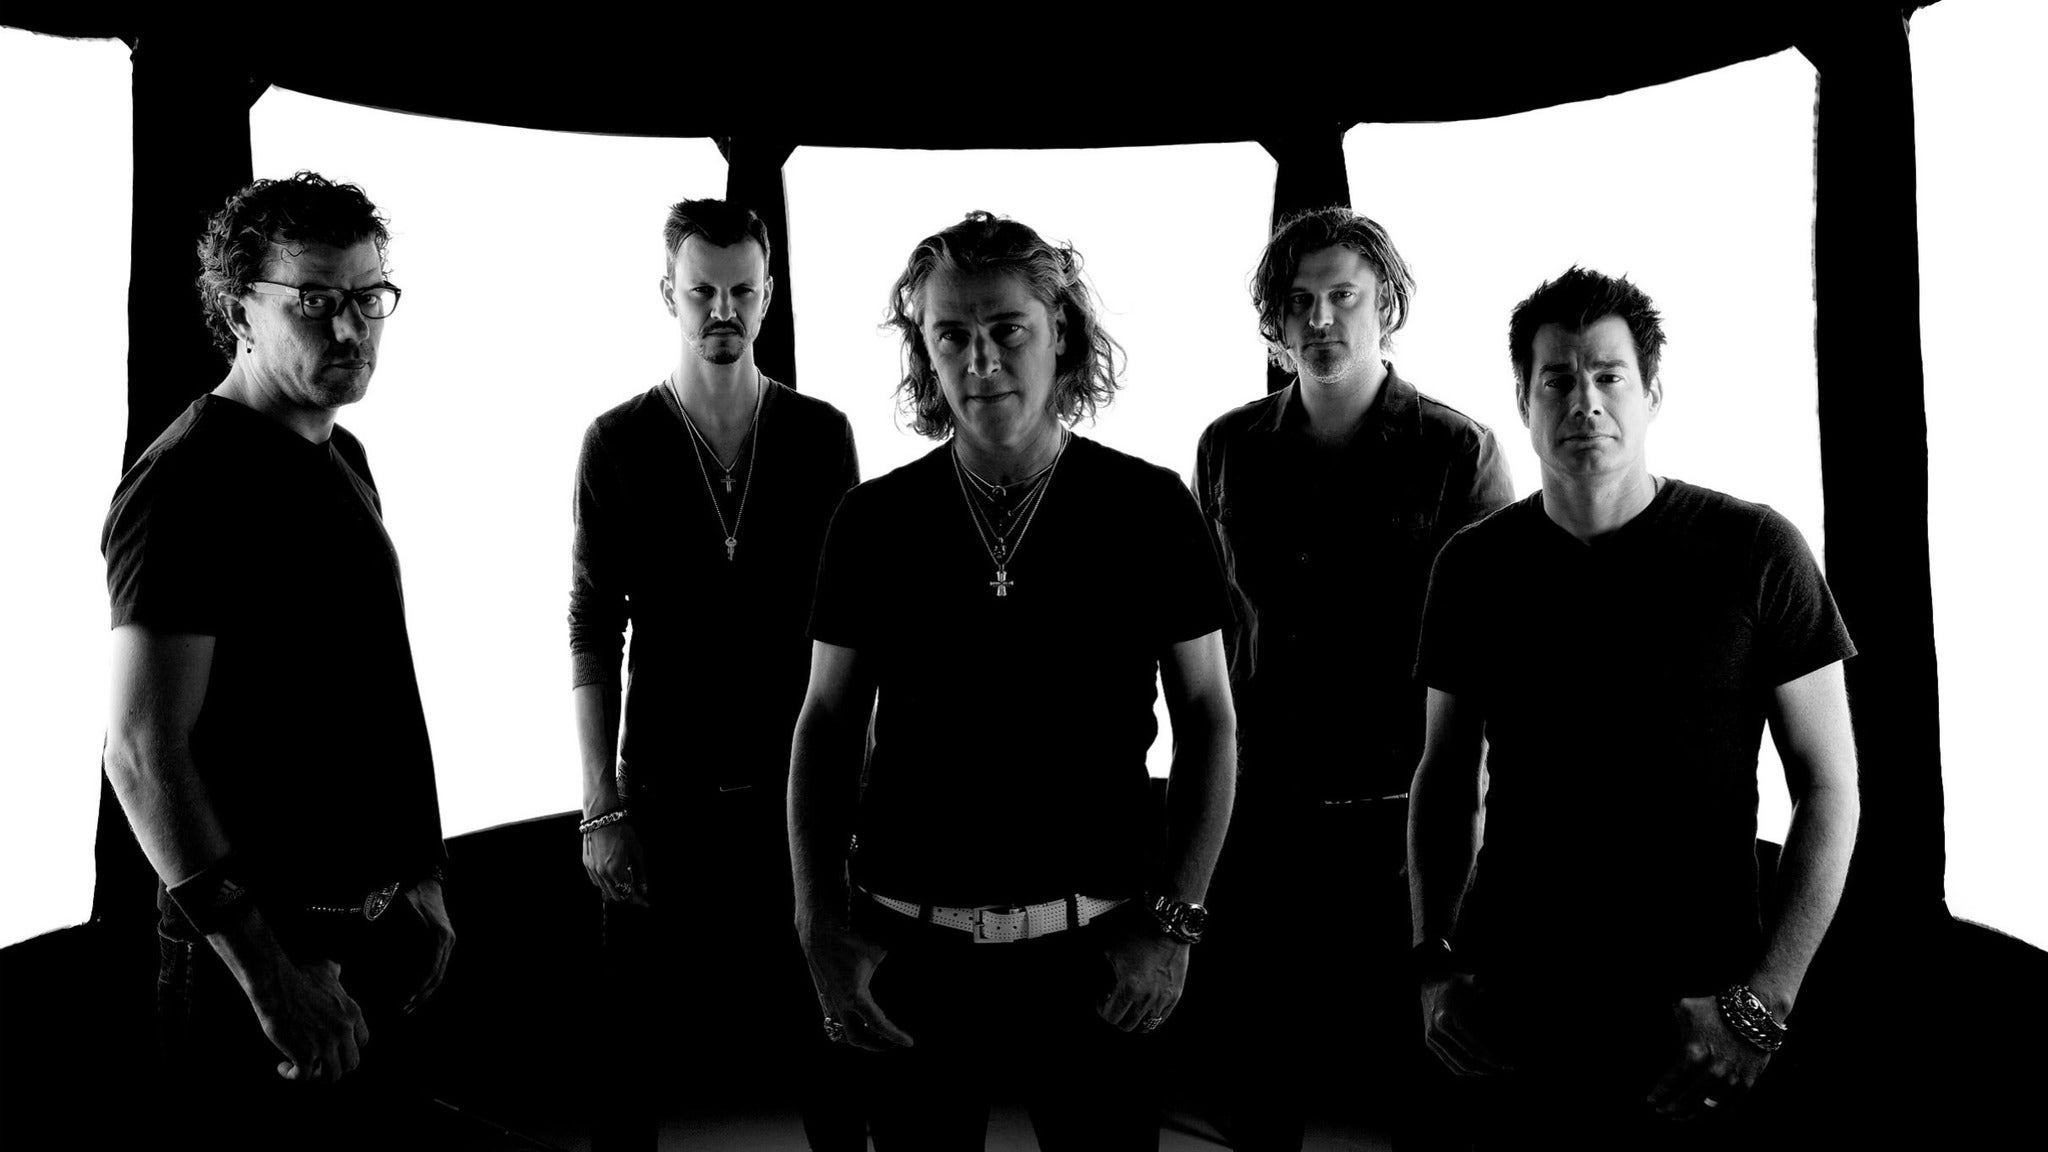 WDHA Presents Collective Soul